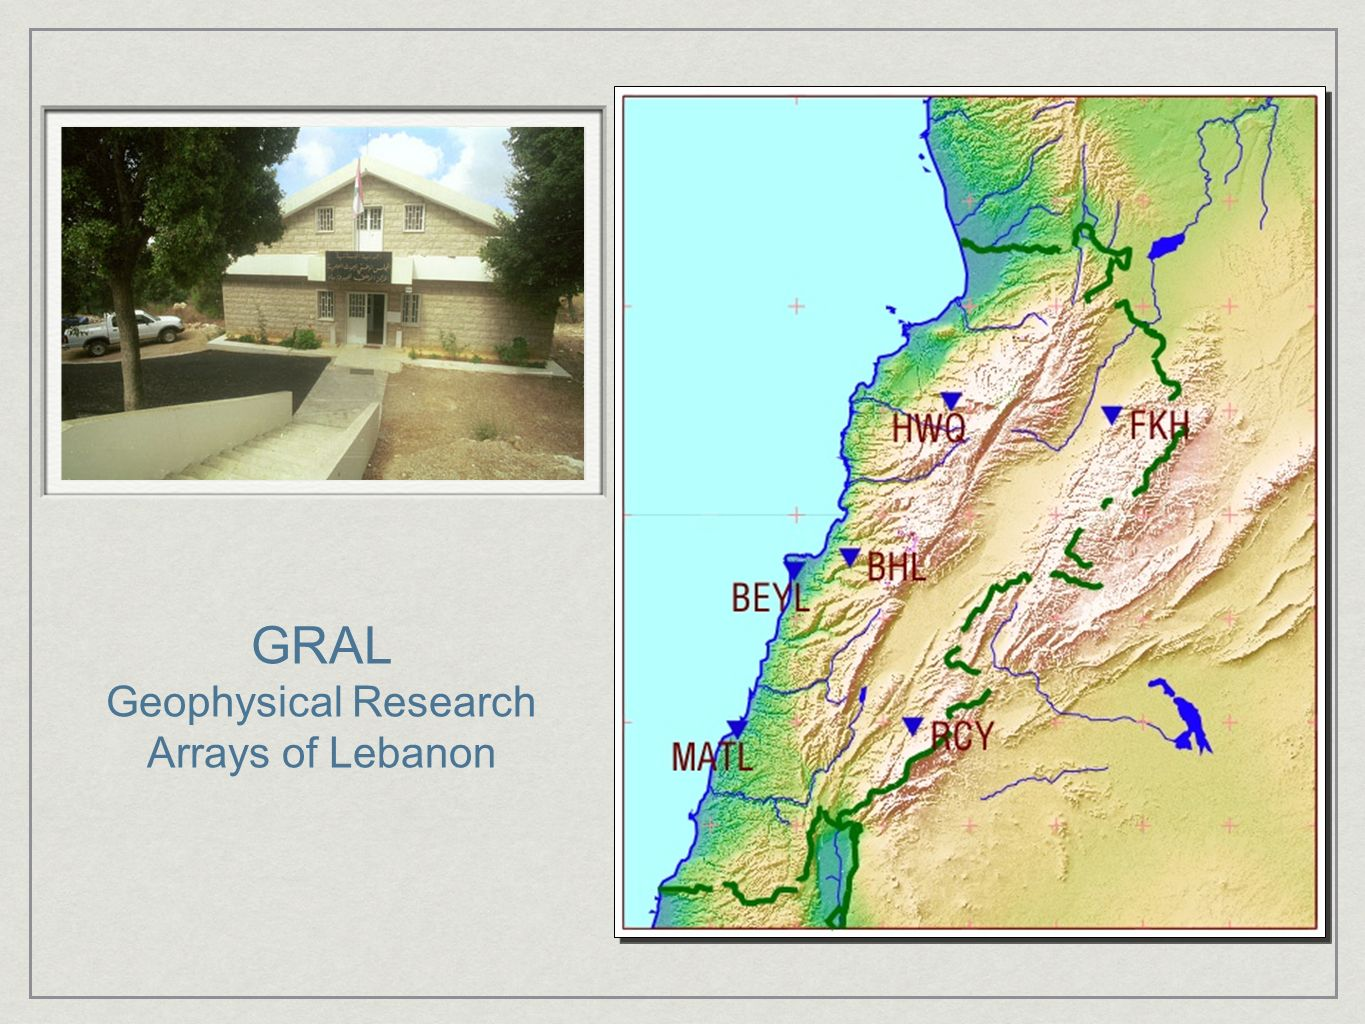 GRAL Geophysical Research Arrays of Lebanon